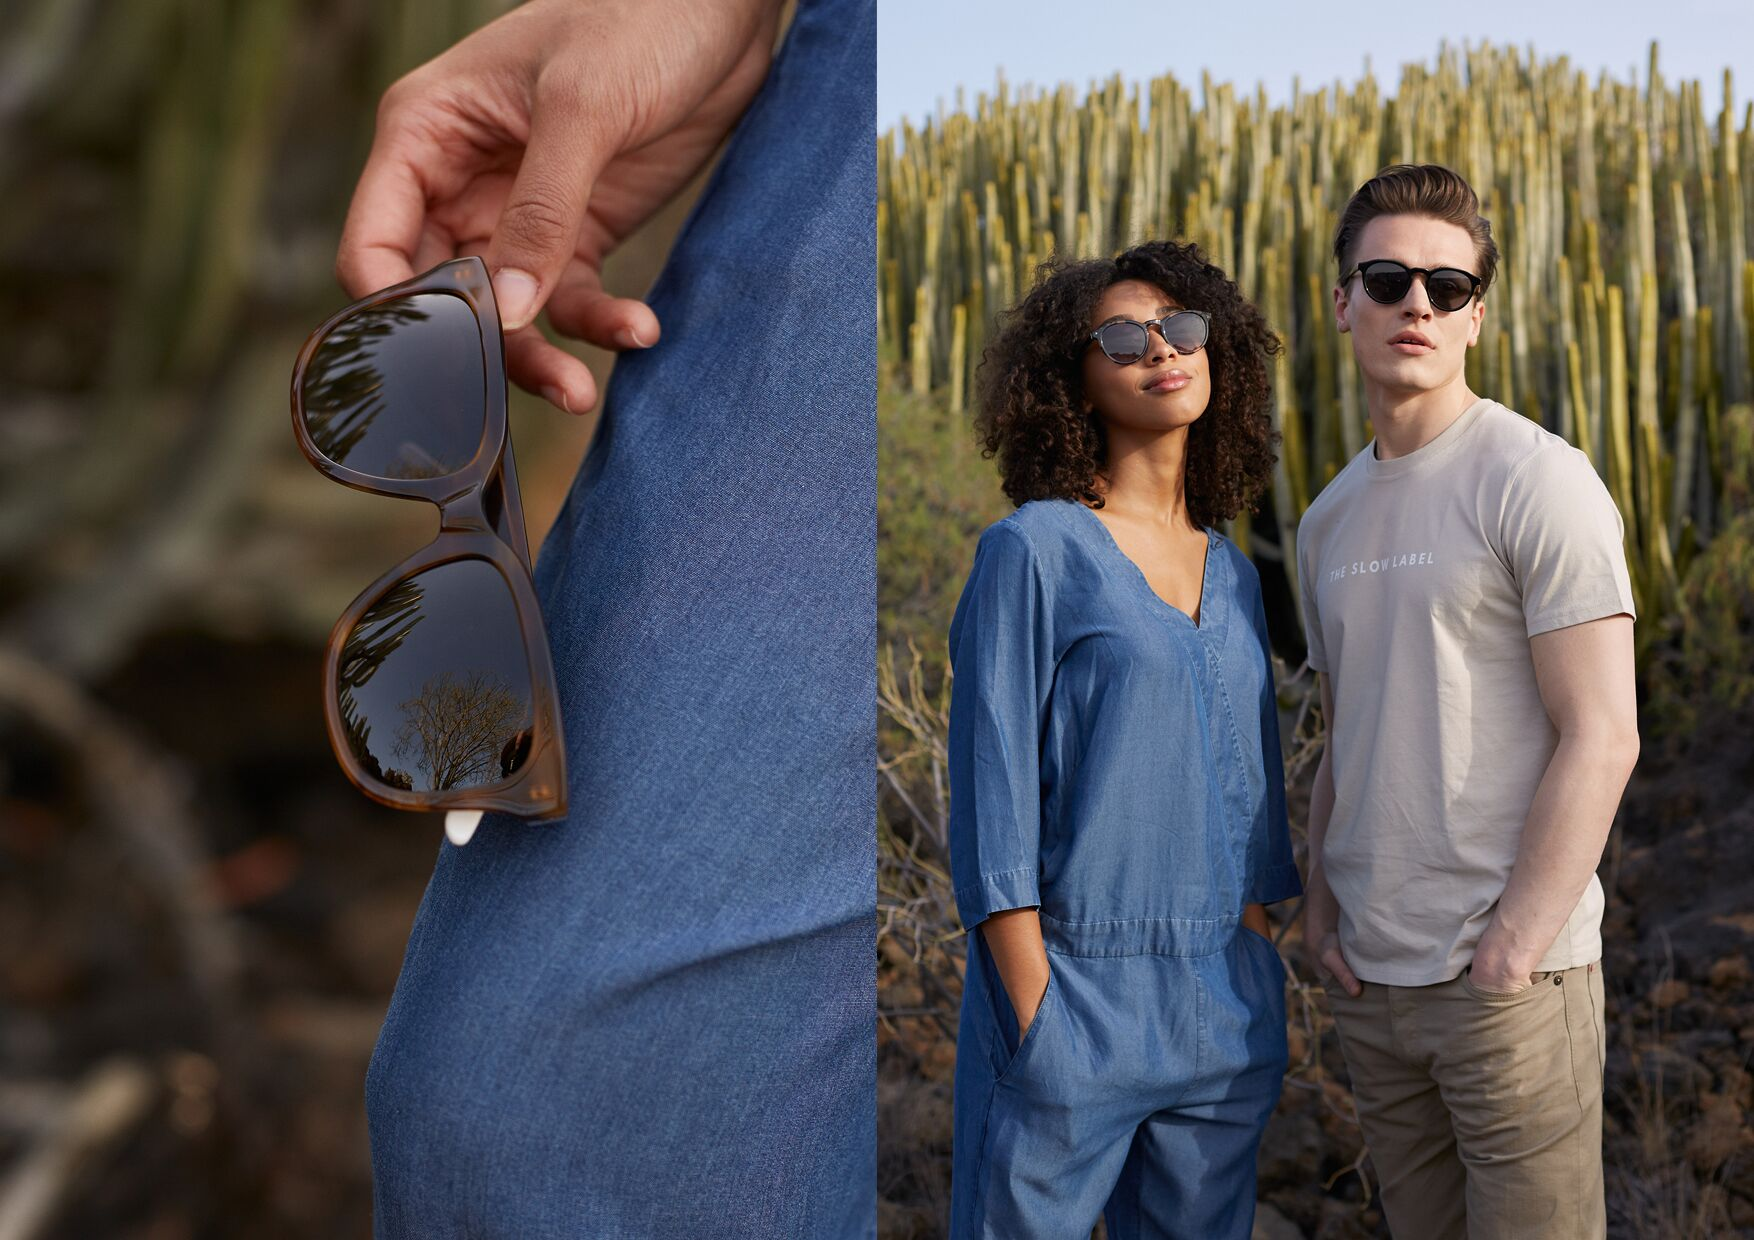 Male and female wearing sustainable sunglasses by Pala